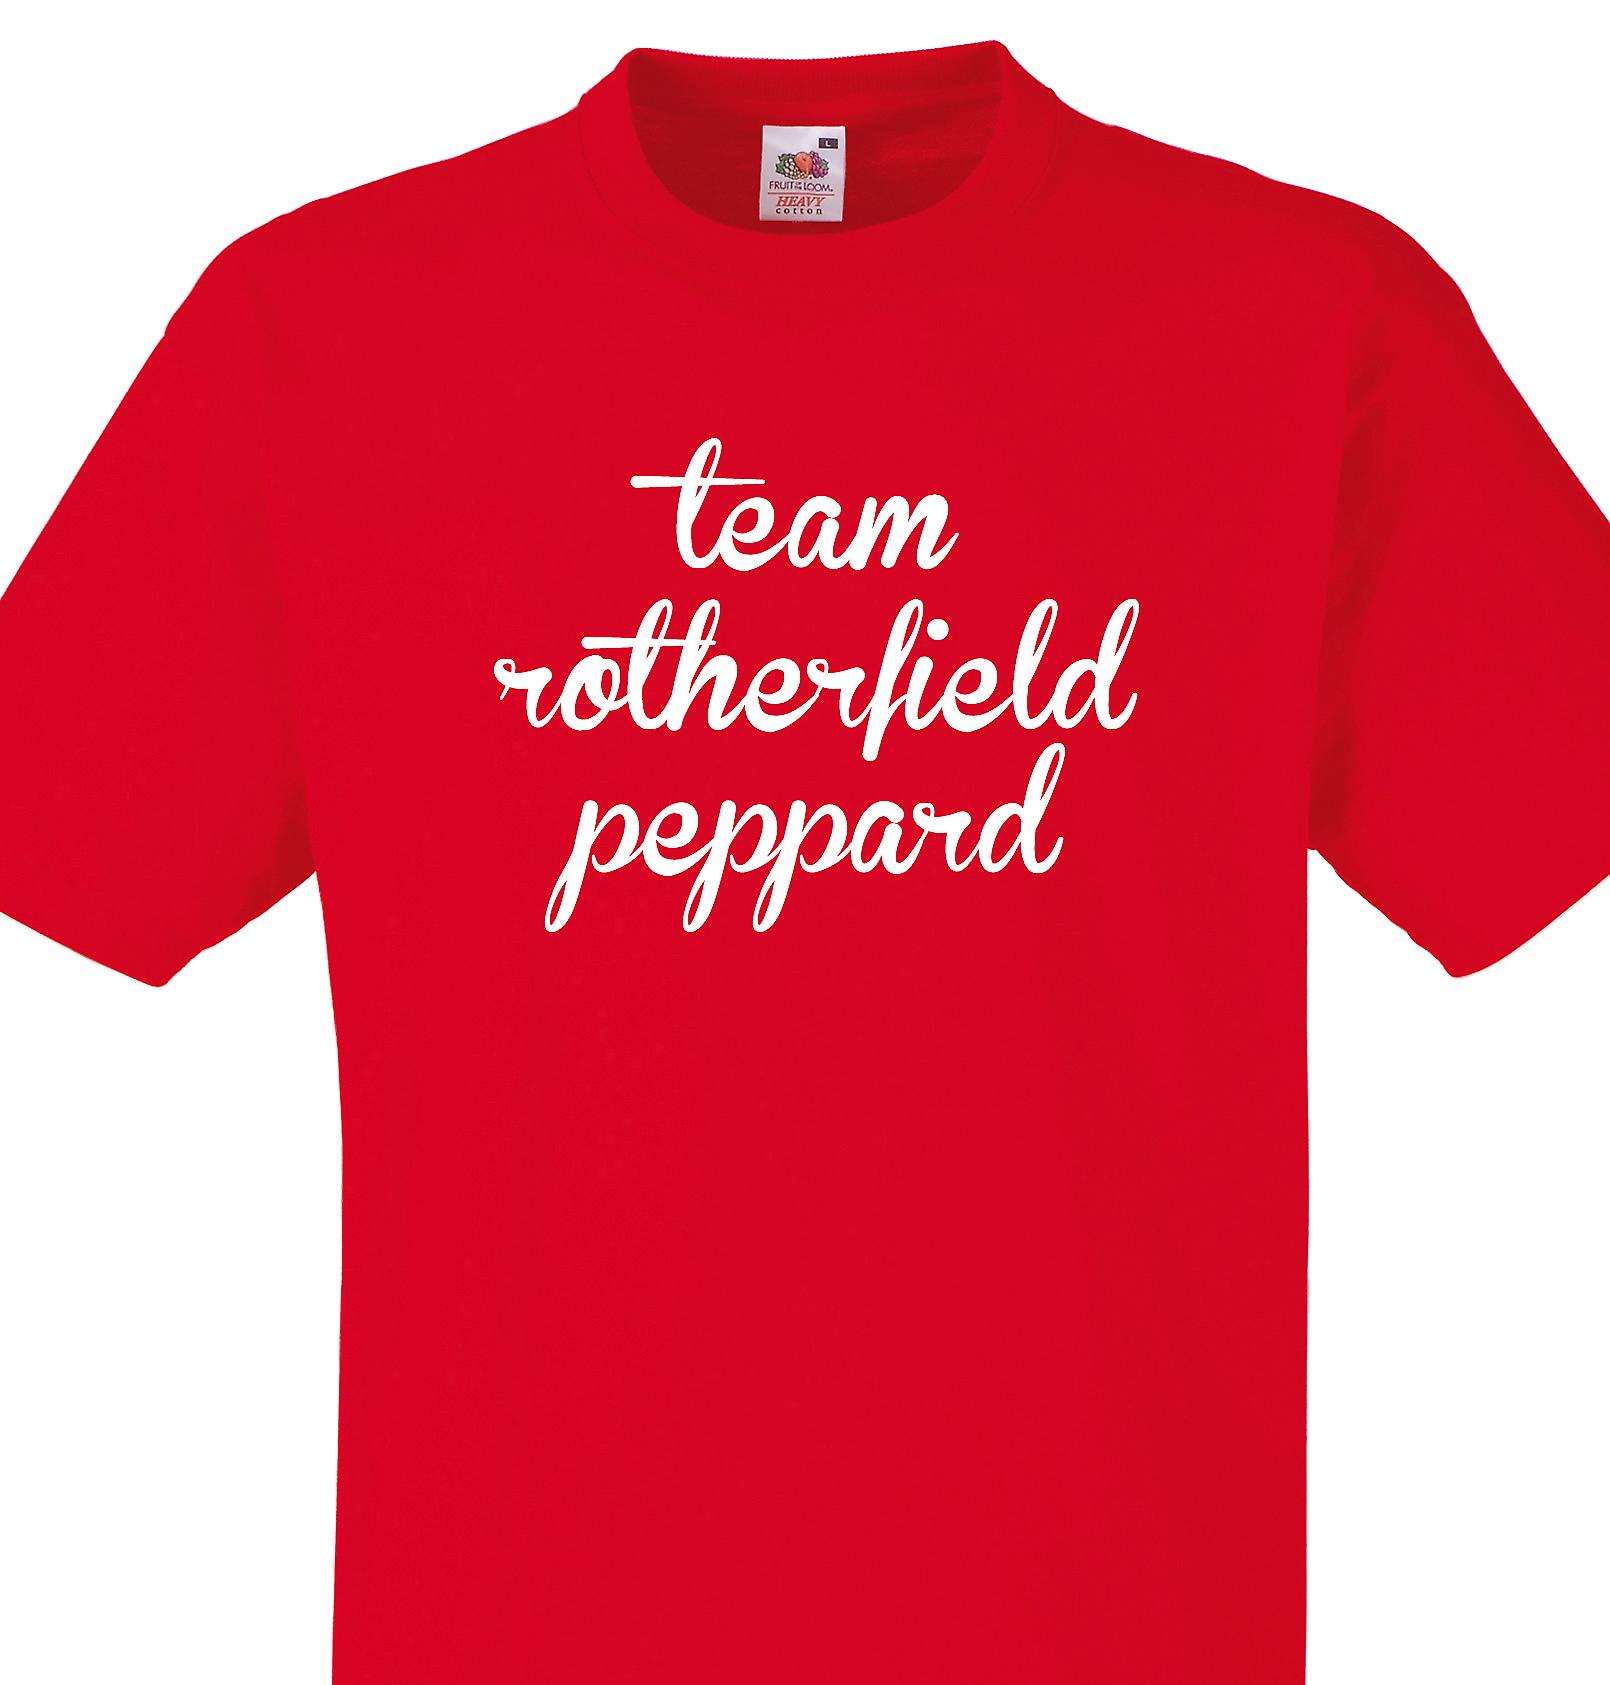 Team Rotherfield peppard Red T shirt